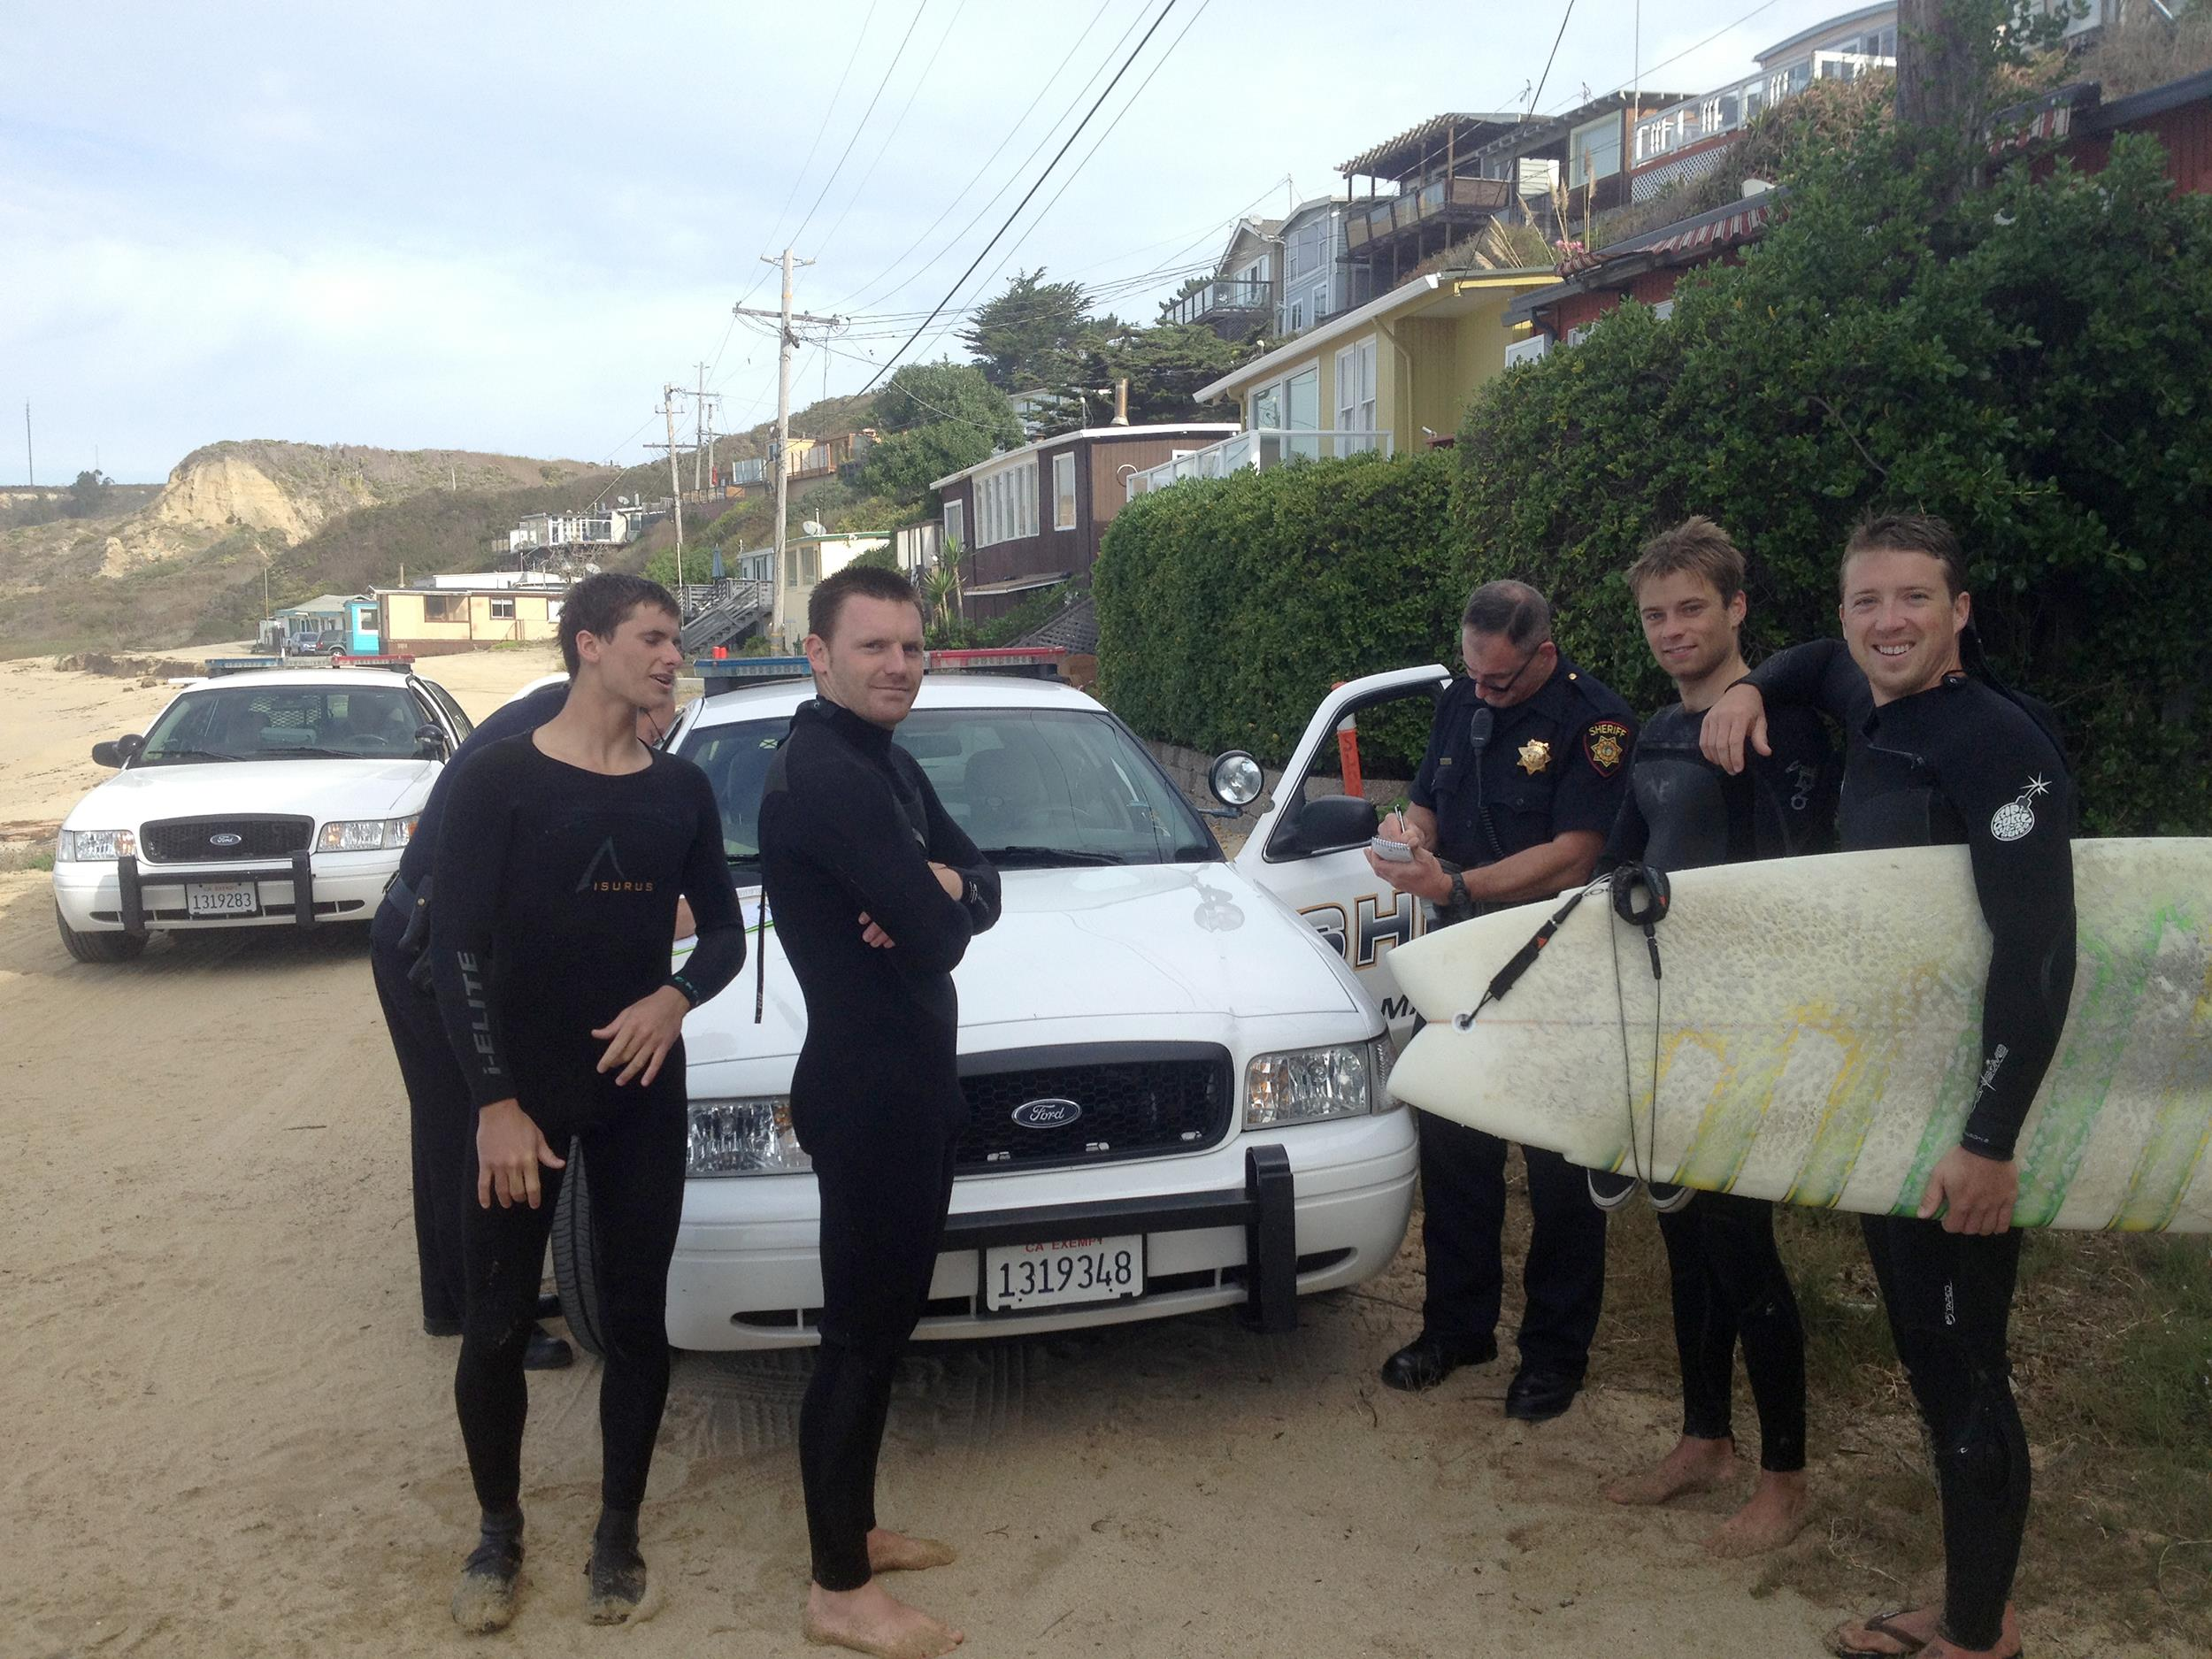 Image: Surfers are arrested during a dispute over beach access